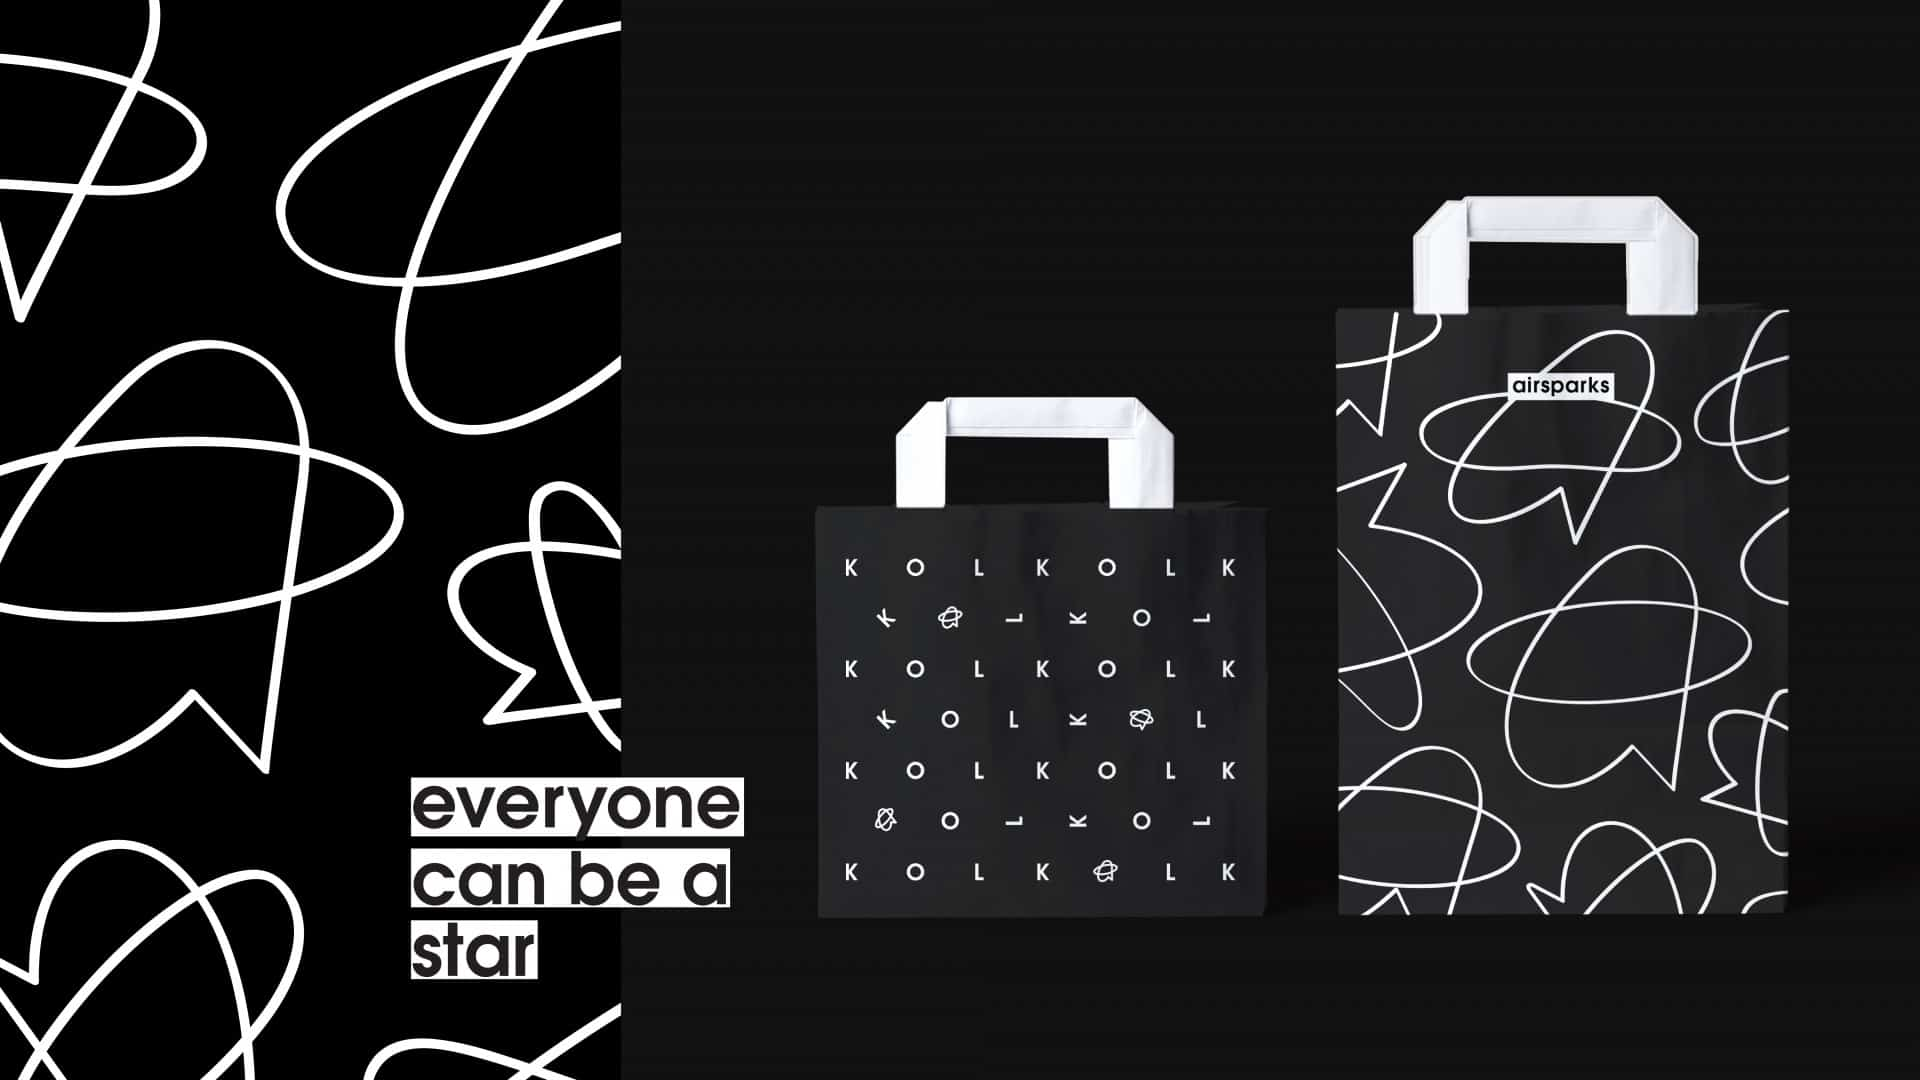 airsparks | everyone can be a star | Branding design